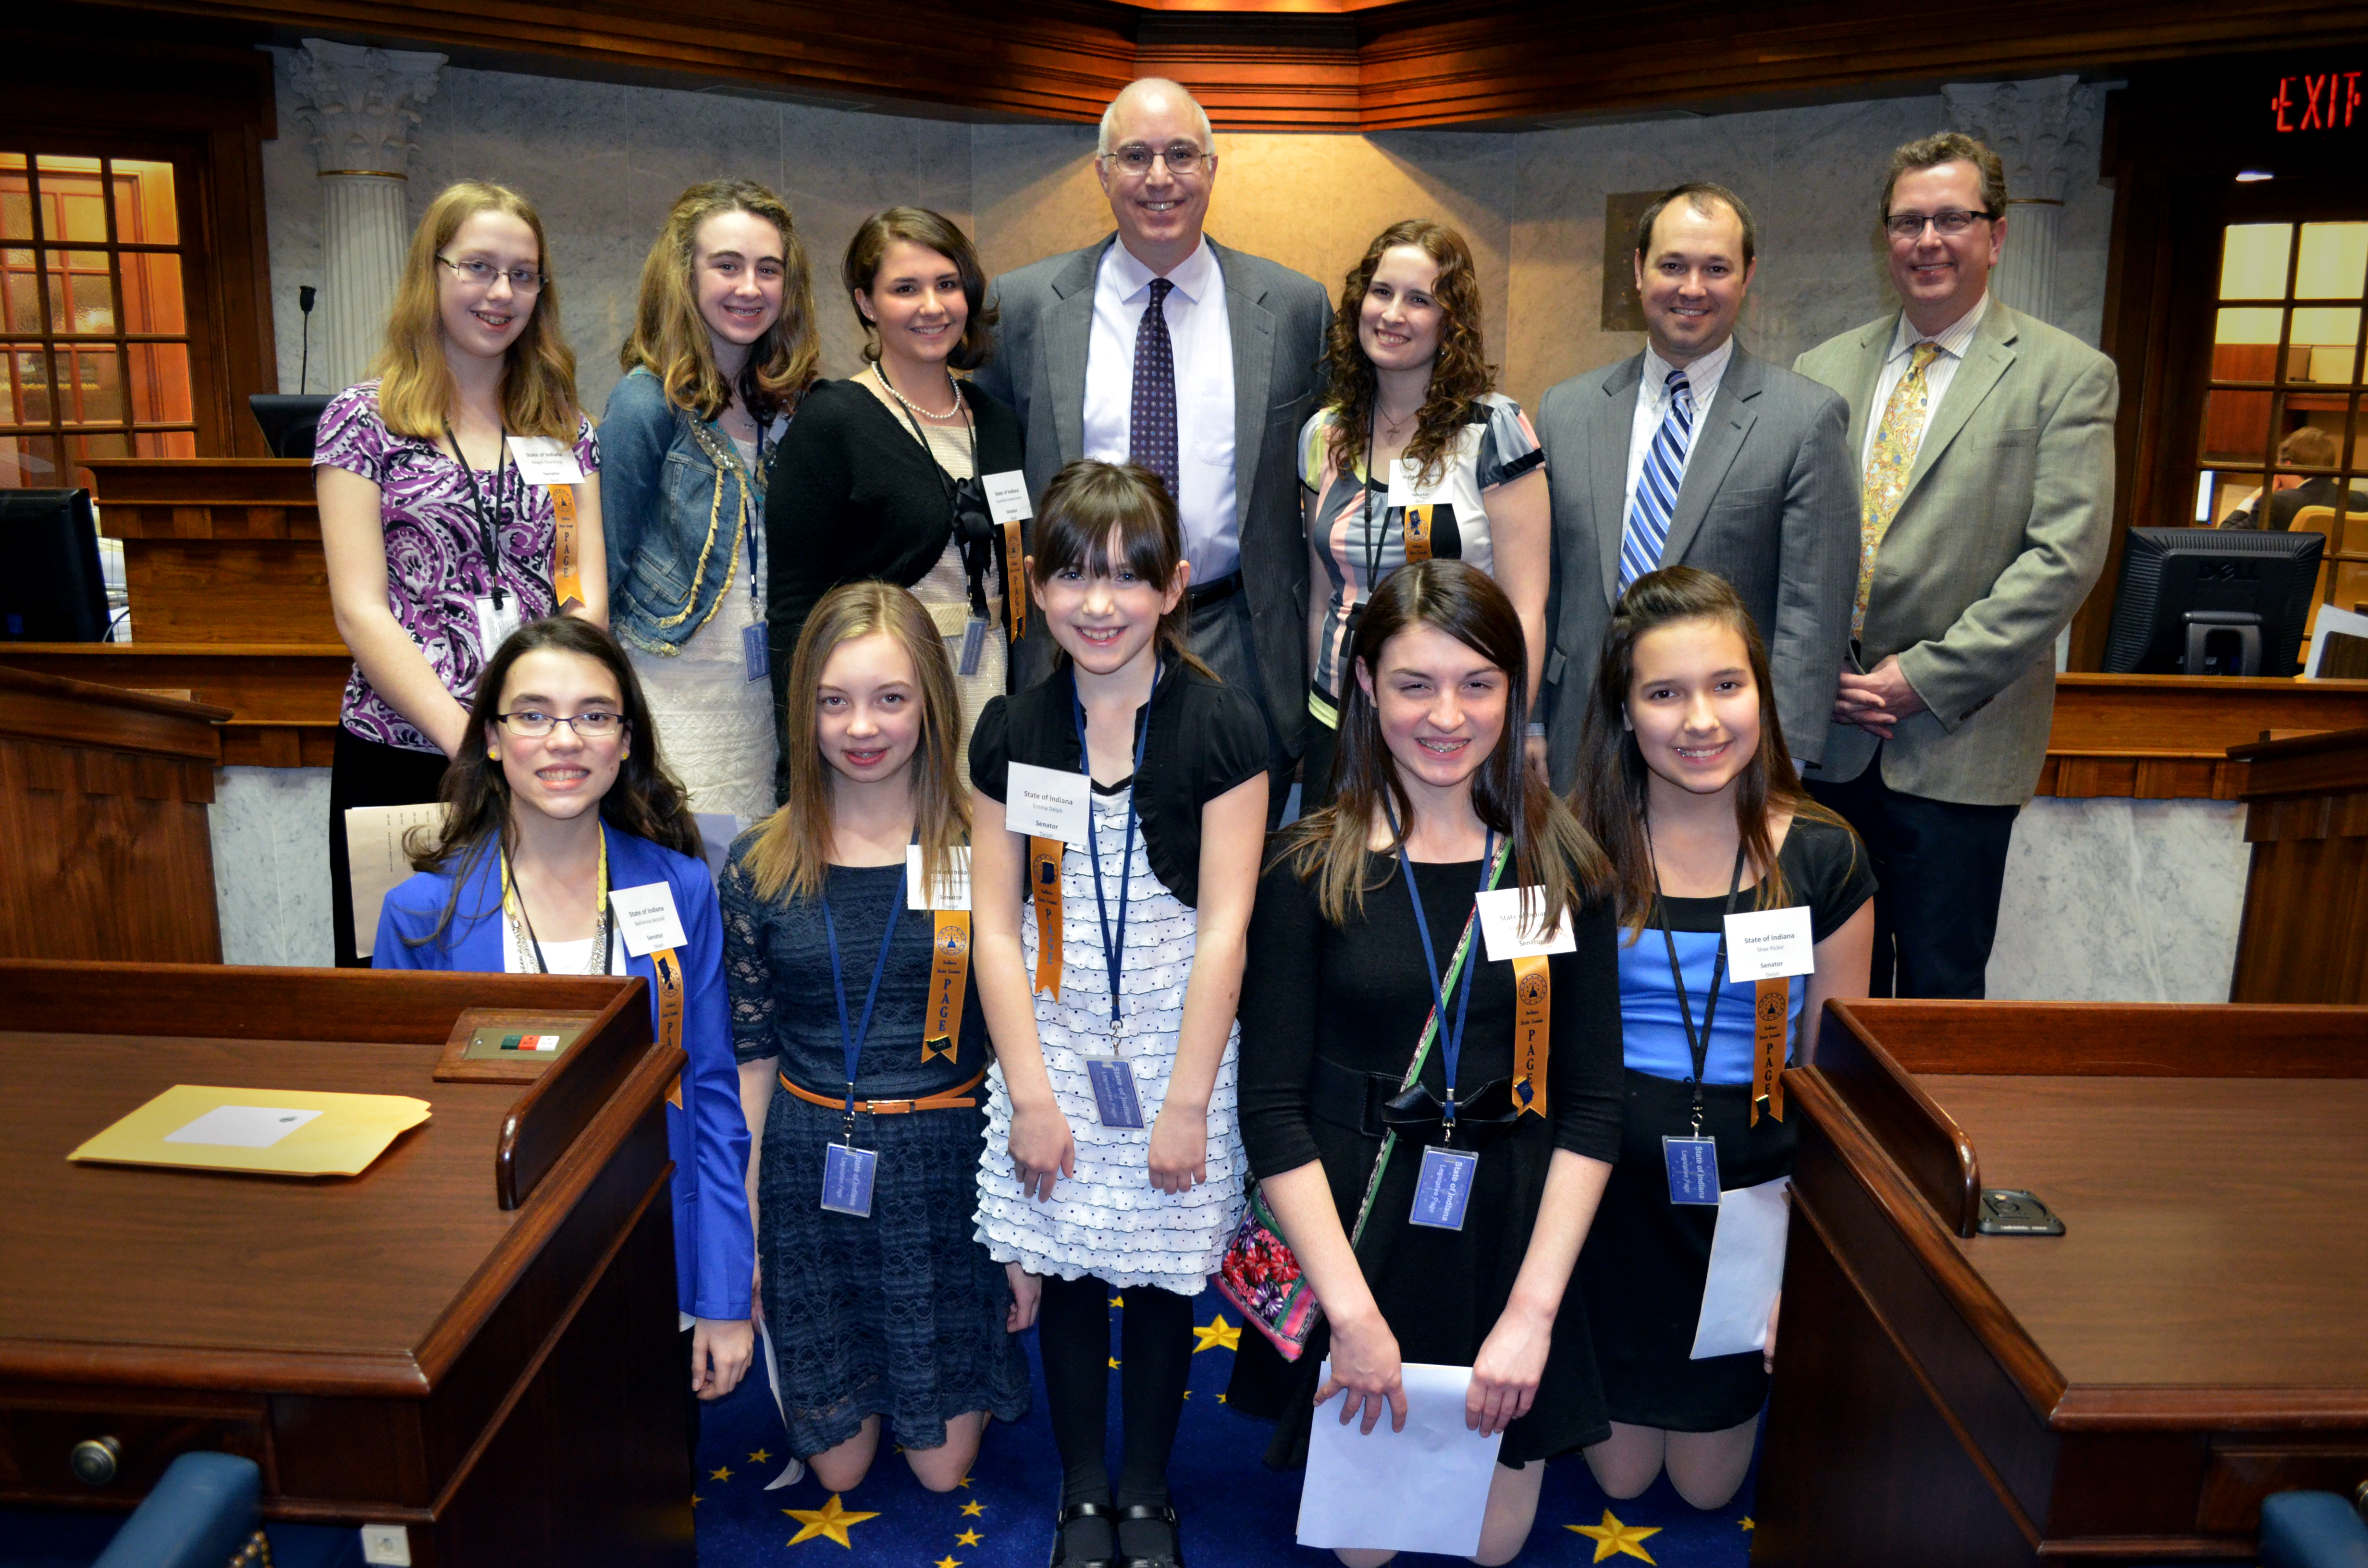 Beth Anne Betzold, Abby Delph, Emma Delph, Gabby Emberton, Madalyn Gagen, Shae Rickel, Charlotte Russell, Charlotte Seidensticker and Abigail Thornburg all joined State Sen. Delph at the Statehouse for a day last week. (Submitted photo)